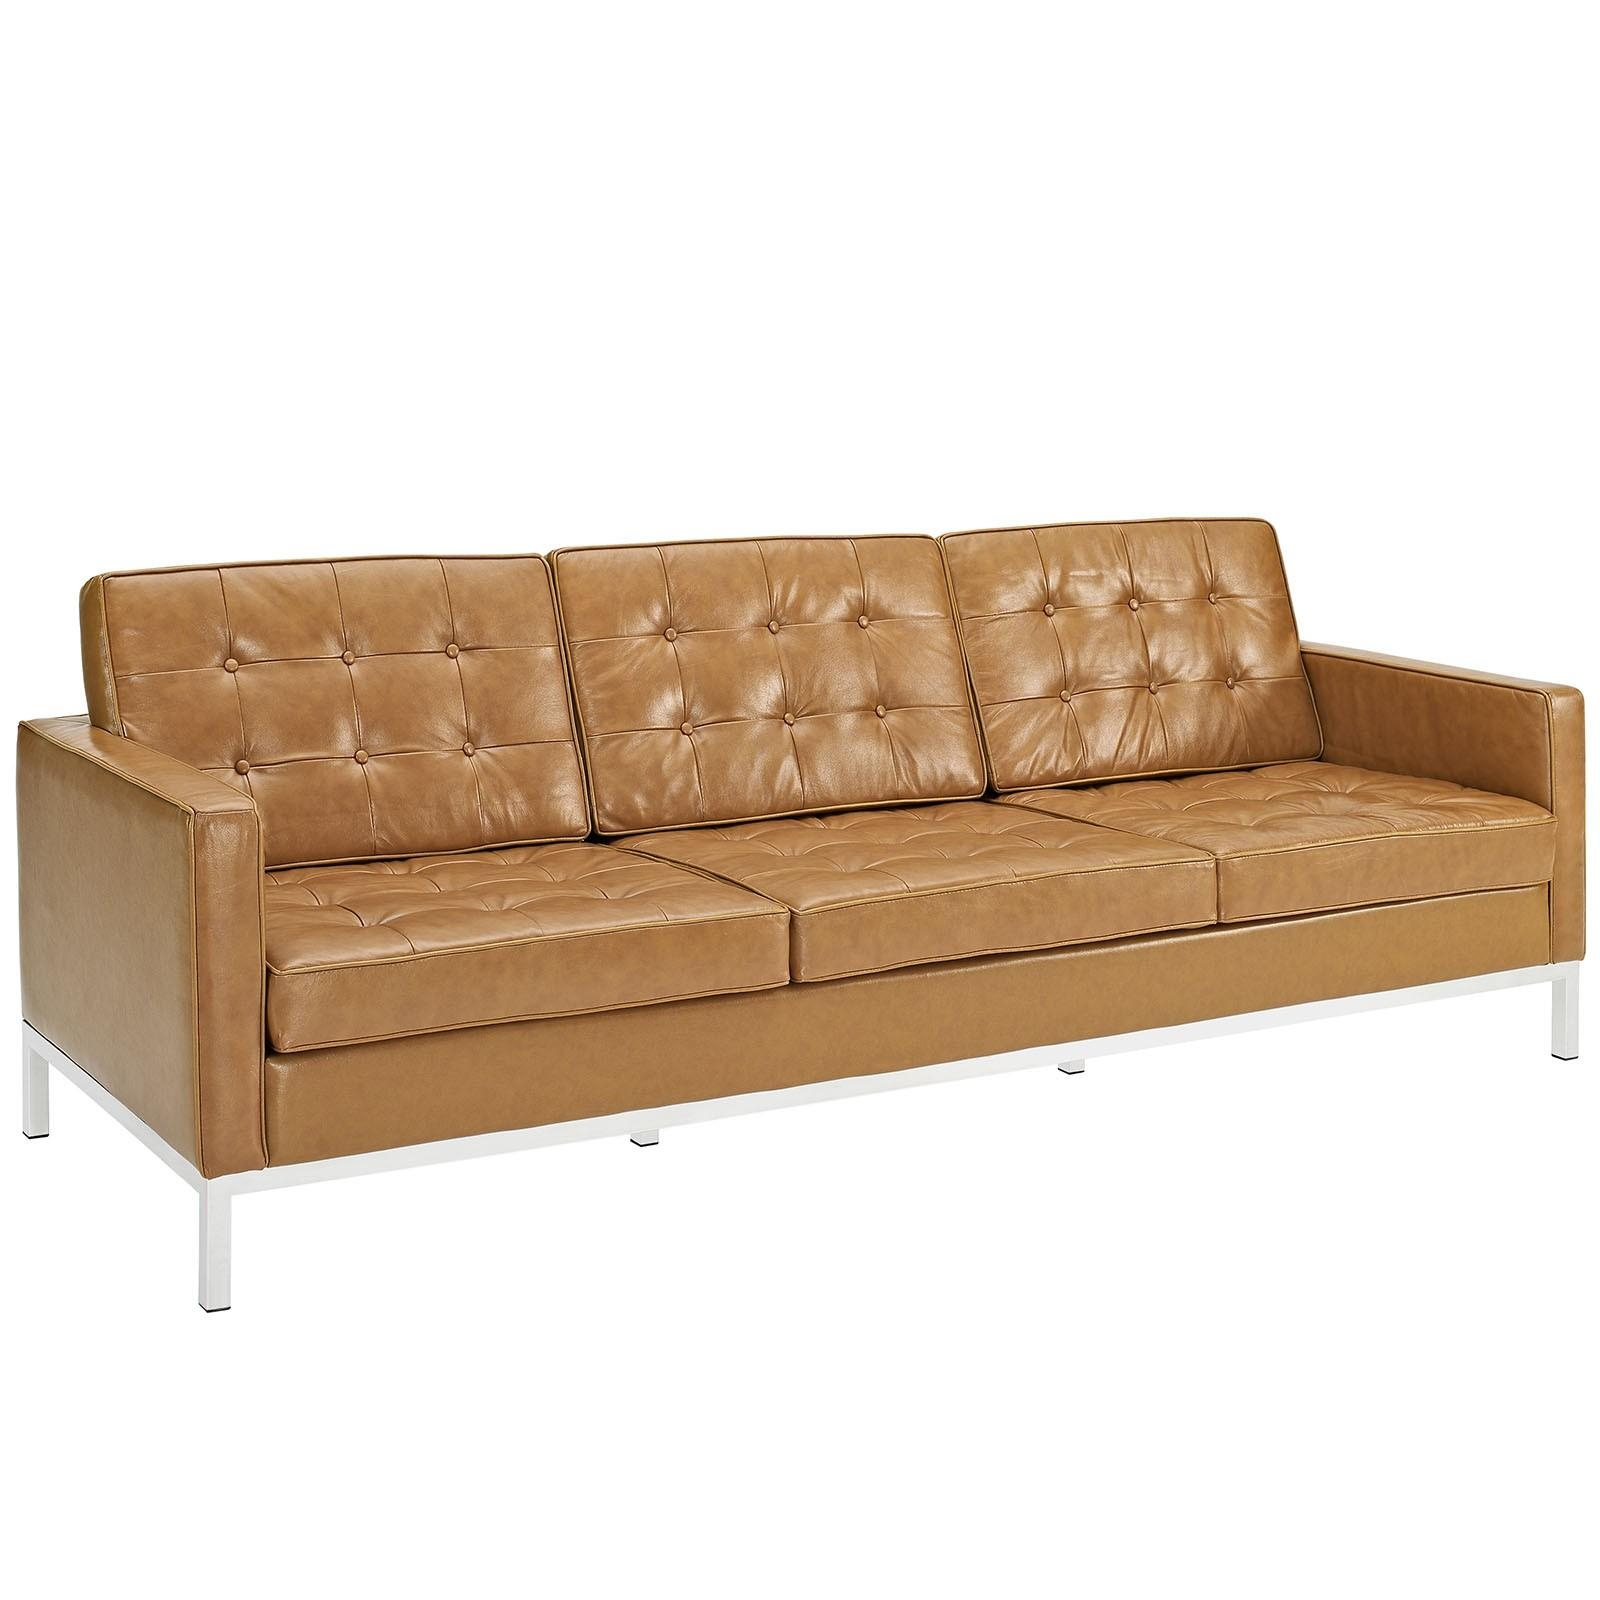 Florence Knoll Style Sofa In Leather (Multiple Colors/materials Regarding Florence Leather Sofas (Image 11 of 20)